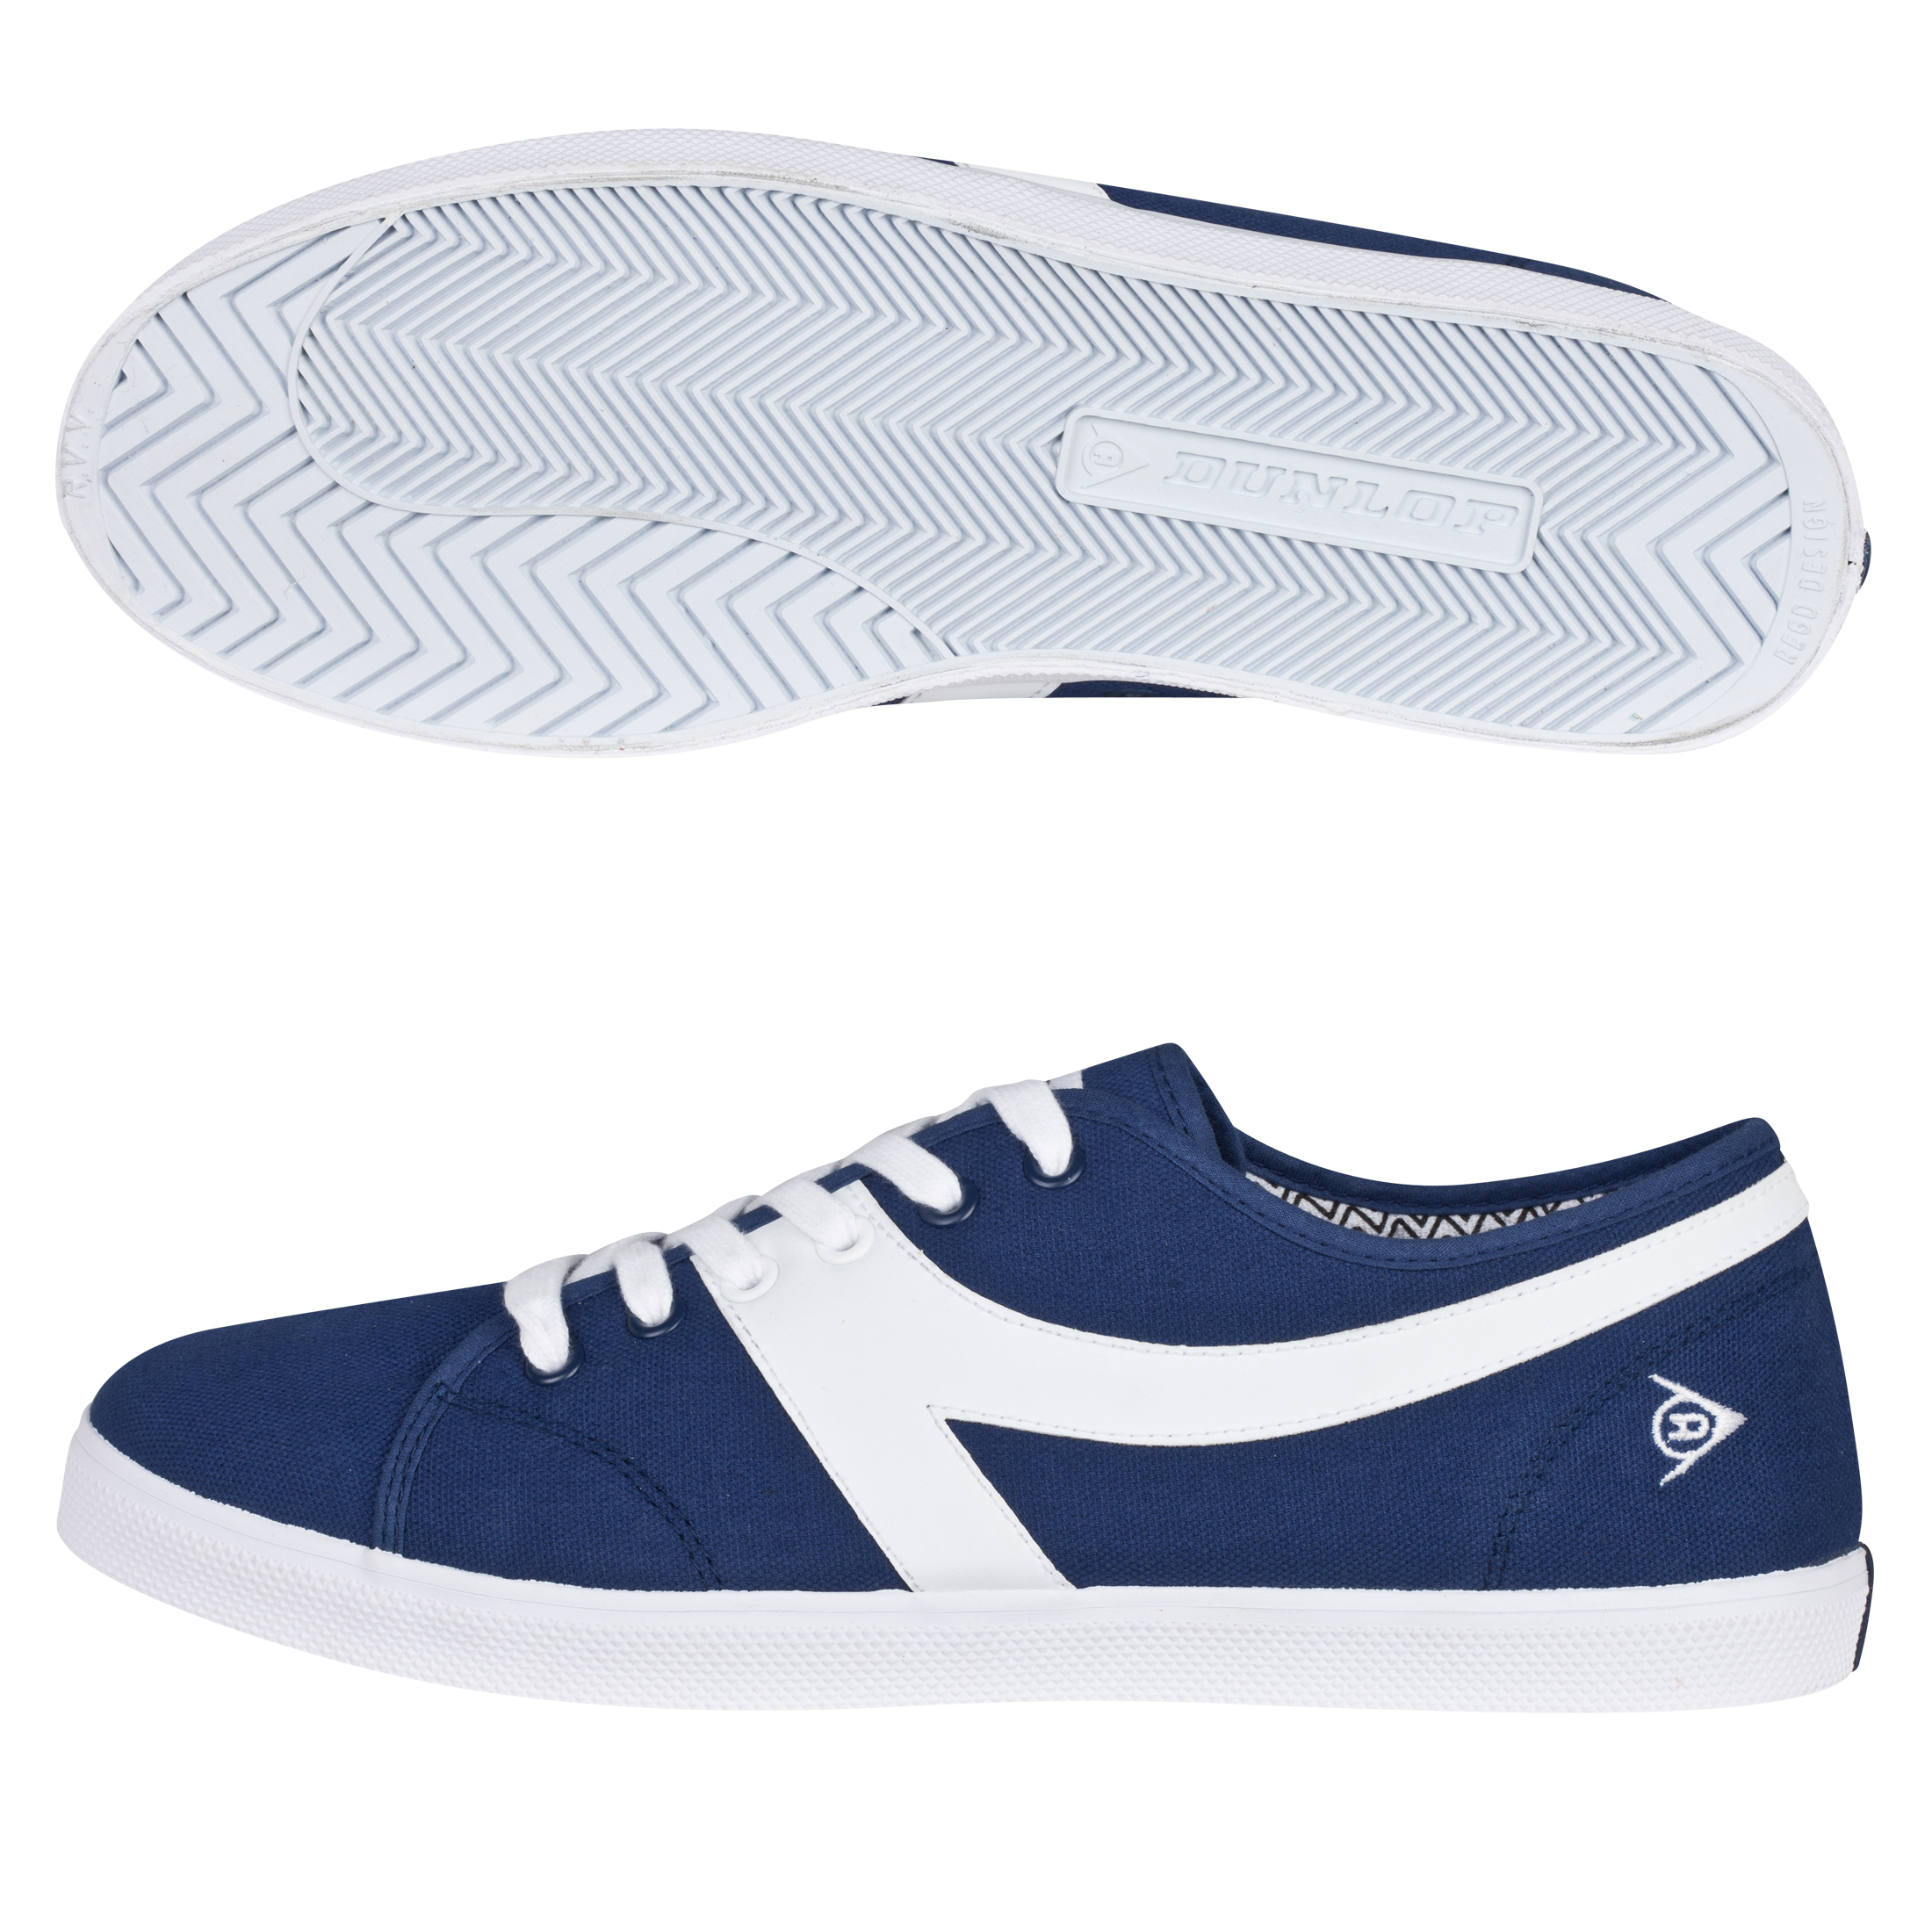 Dunlop 1987 Chevron Trainers - Navy/White